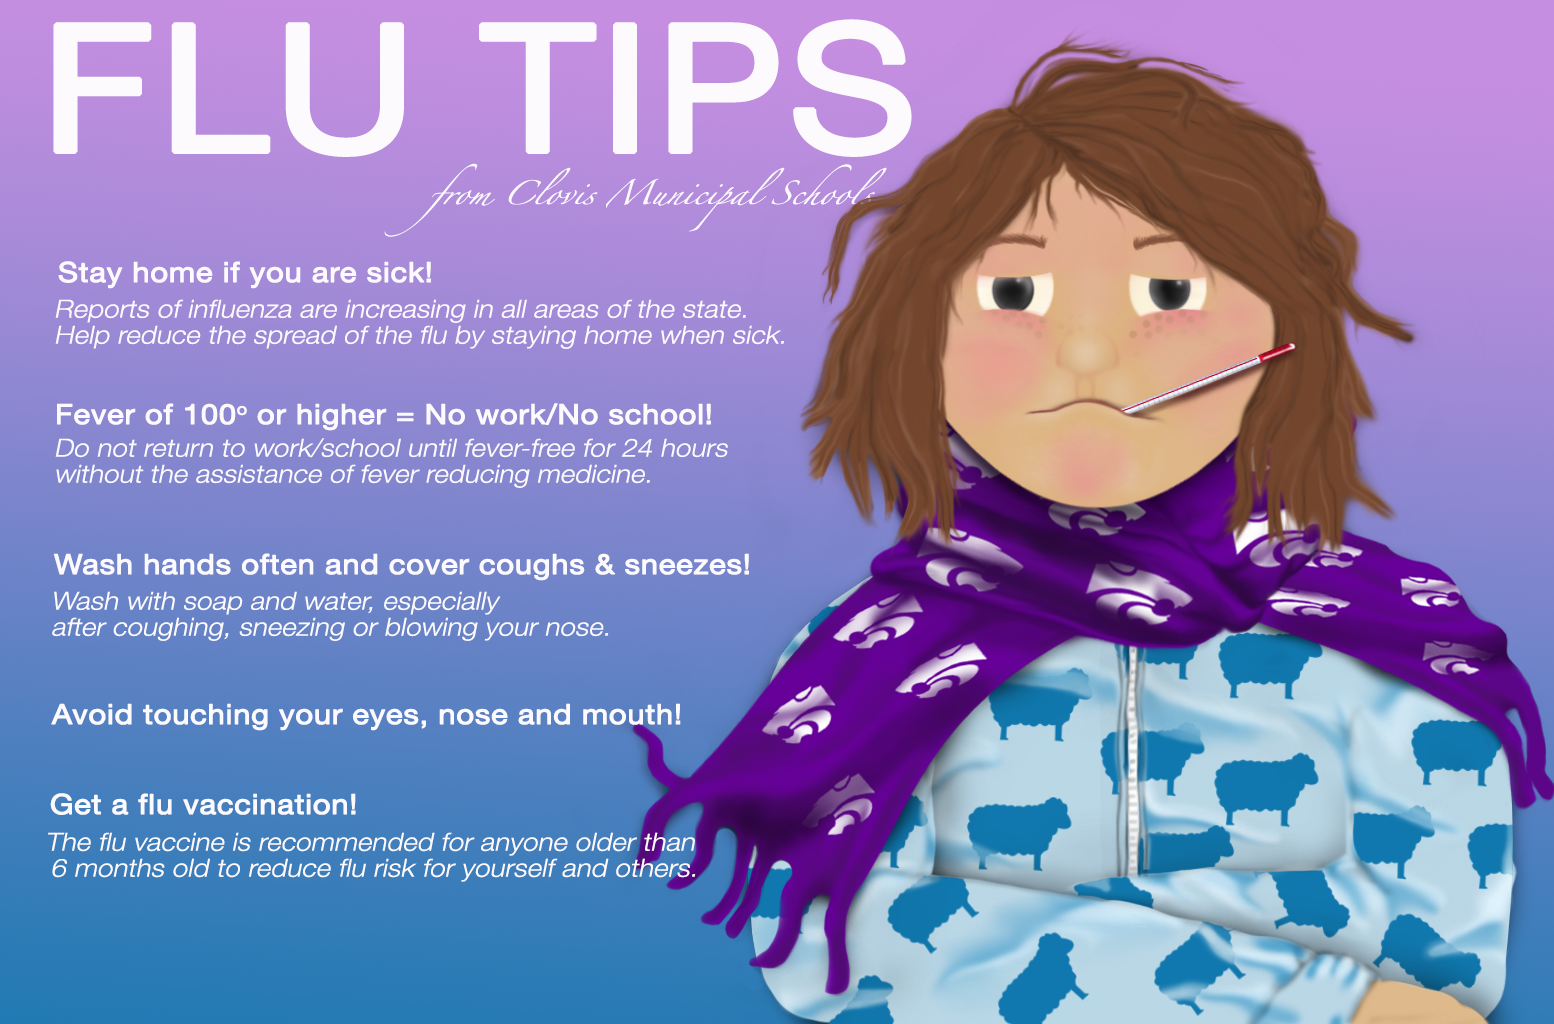 Image of sick child with text containing flu tips